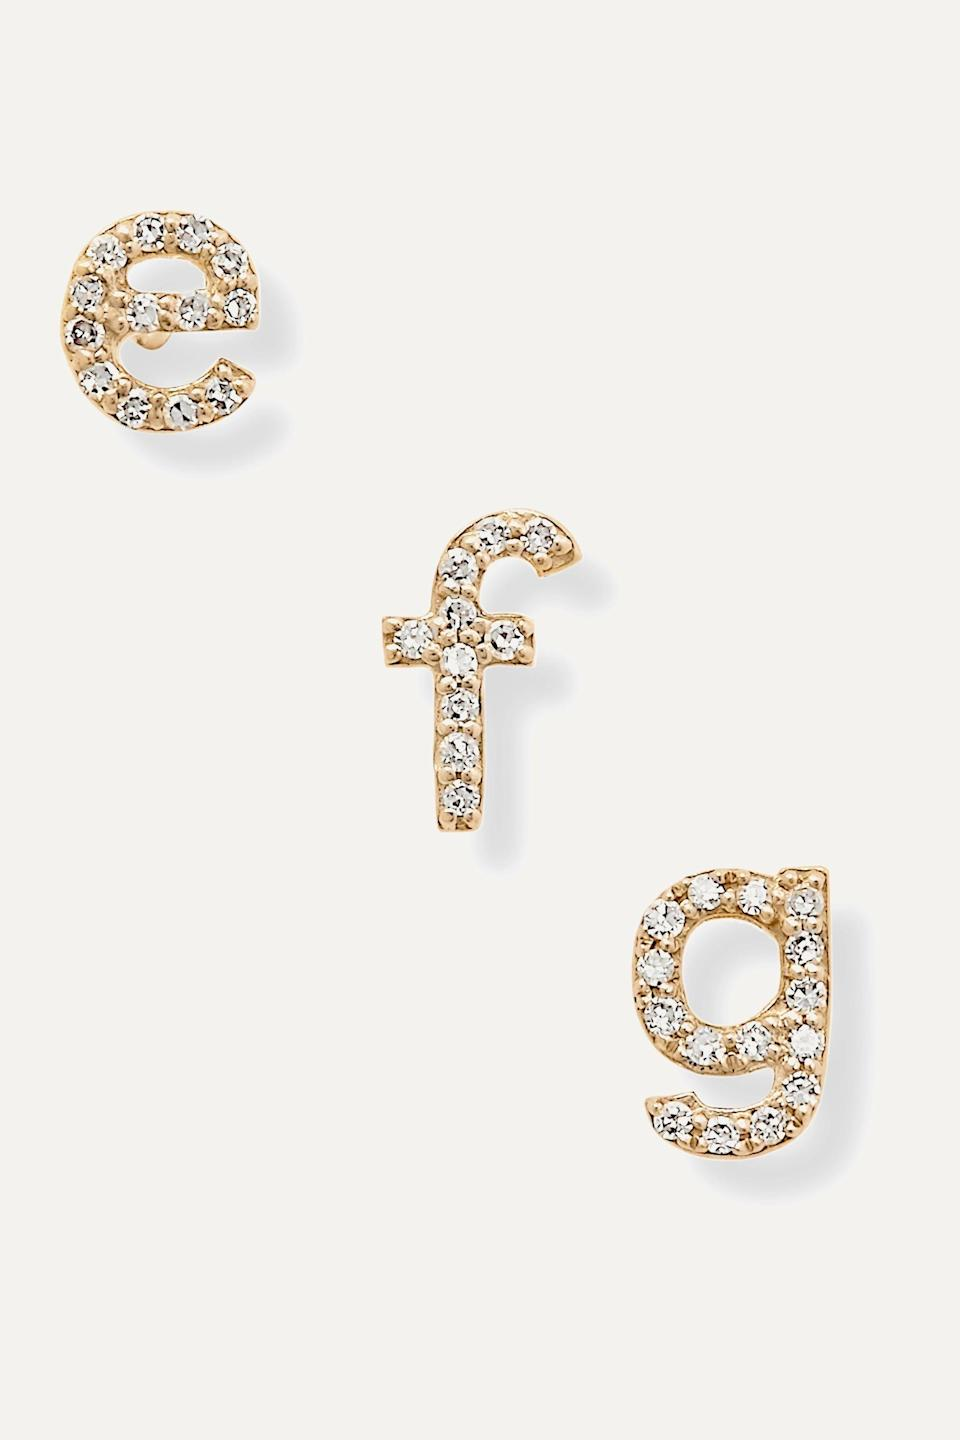 """<h3>Stone & Strand Single Alphabet Earring<br></h3> <br>These individual diamond-studded 14K gold letter earrings from Stone and Strand are surprisingly hefty, given their competitive cost.<br><br><em>Shop <strong><a href=""""https://www.net-a-porter.com/en-us/shop/designer/stone-and-strand"""" rel=""""nofollow noopener"""" target=""""_blank"""" data-ylk=""""slk:Stone & Strand"""" class=""""link rapid-noclick-resp"""">Stone & Strand</a></strong></em><br><br><strong>Stone and Strand</strong> Alphabet 14-karat gold diamond single earring, $, available at <a href=""""https://go.skimresources.com/?id=30283X879131&url=https%3A%2F%2Fwww.net-a-porter.com%2Fen-us%2Fshop%2Fproduct%2Fstone-and-strand%2Falphabet-14-karat-gold-diamond-earring%2F1244873"""" rel=""""nofollow noopener"""" target=""""_blank"""" data-ylk=""""slk:Net-A-Porter"""" class=""""link rapid-noclick-resp"""">Net-A-Porter</a><br><br><br>"""